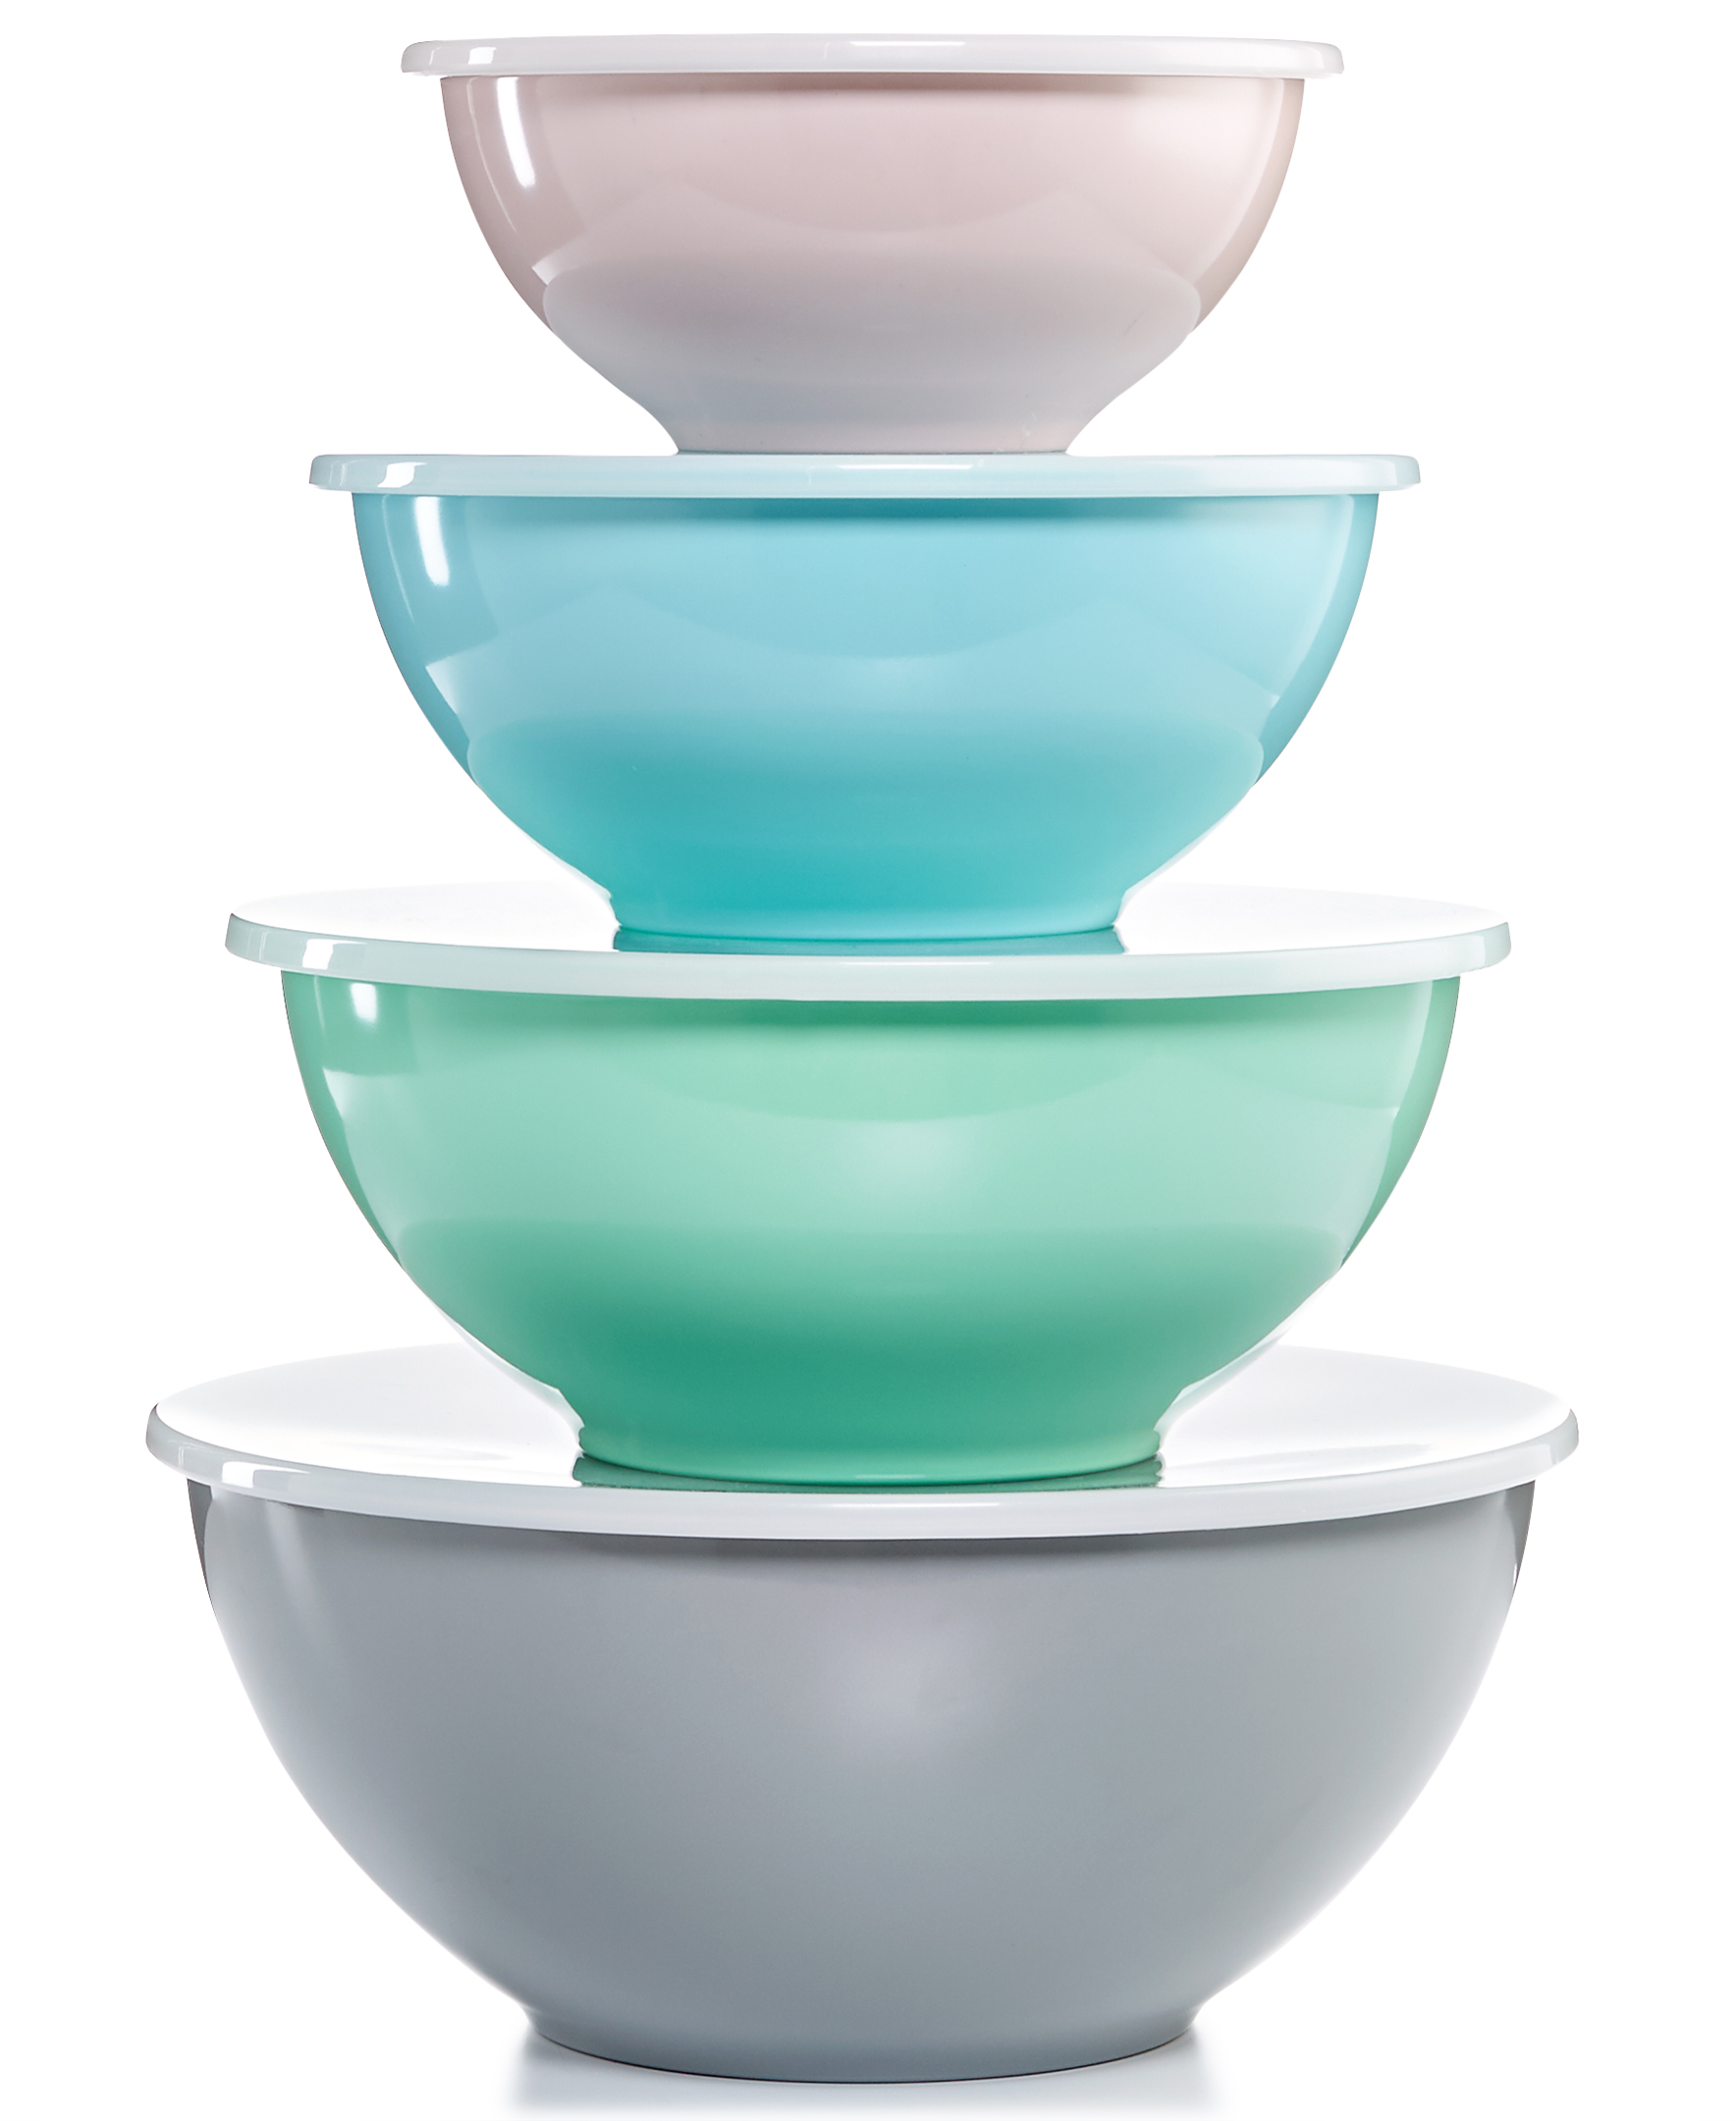 Nested Bowls with Lids